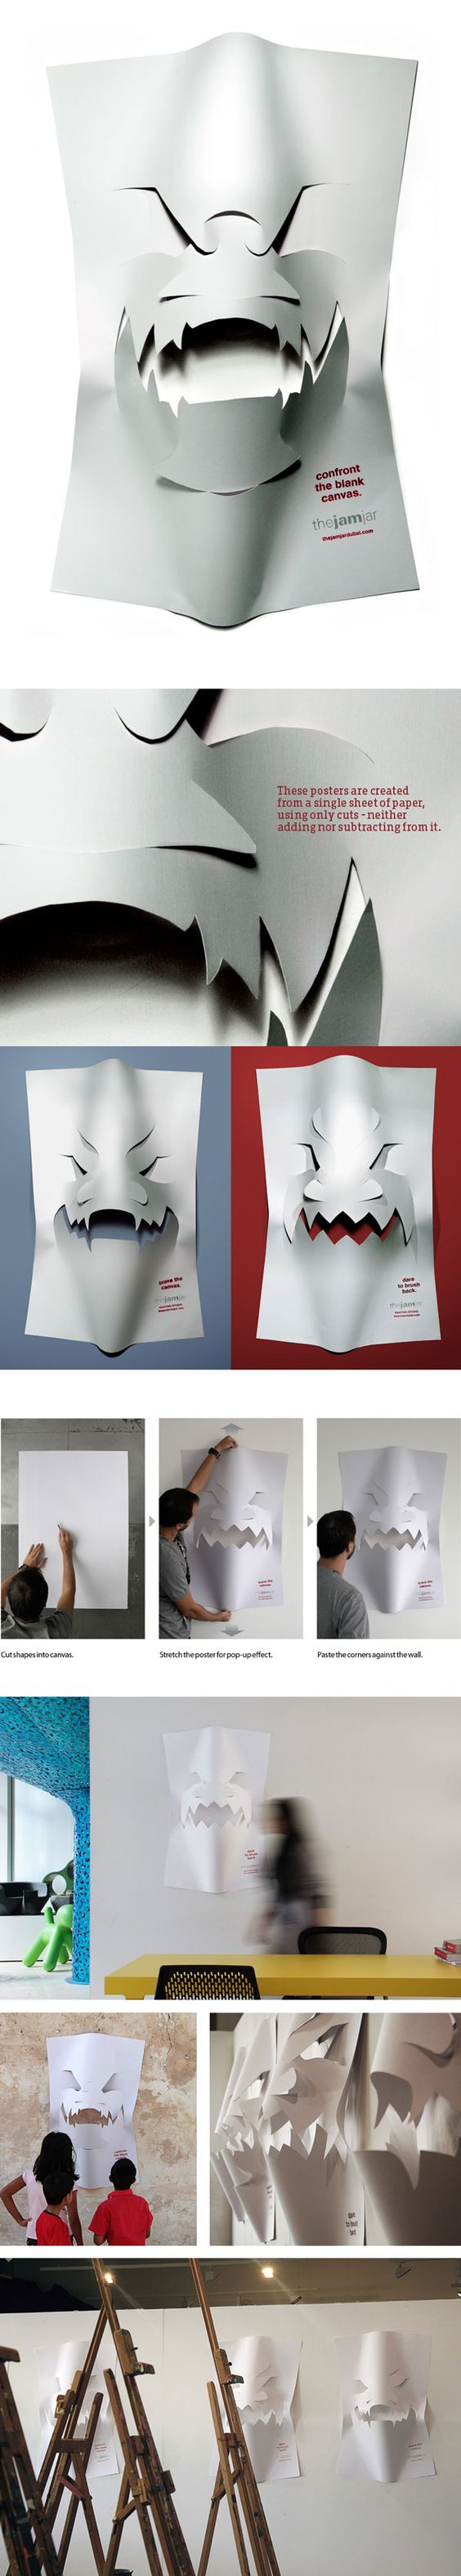 Blank Canvas posters by Leo Rosa Borges, via Behance. so simple! so cool!